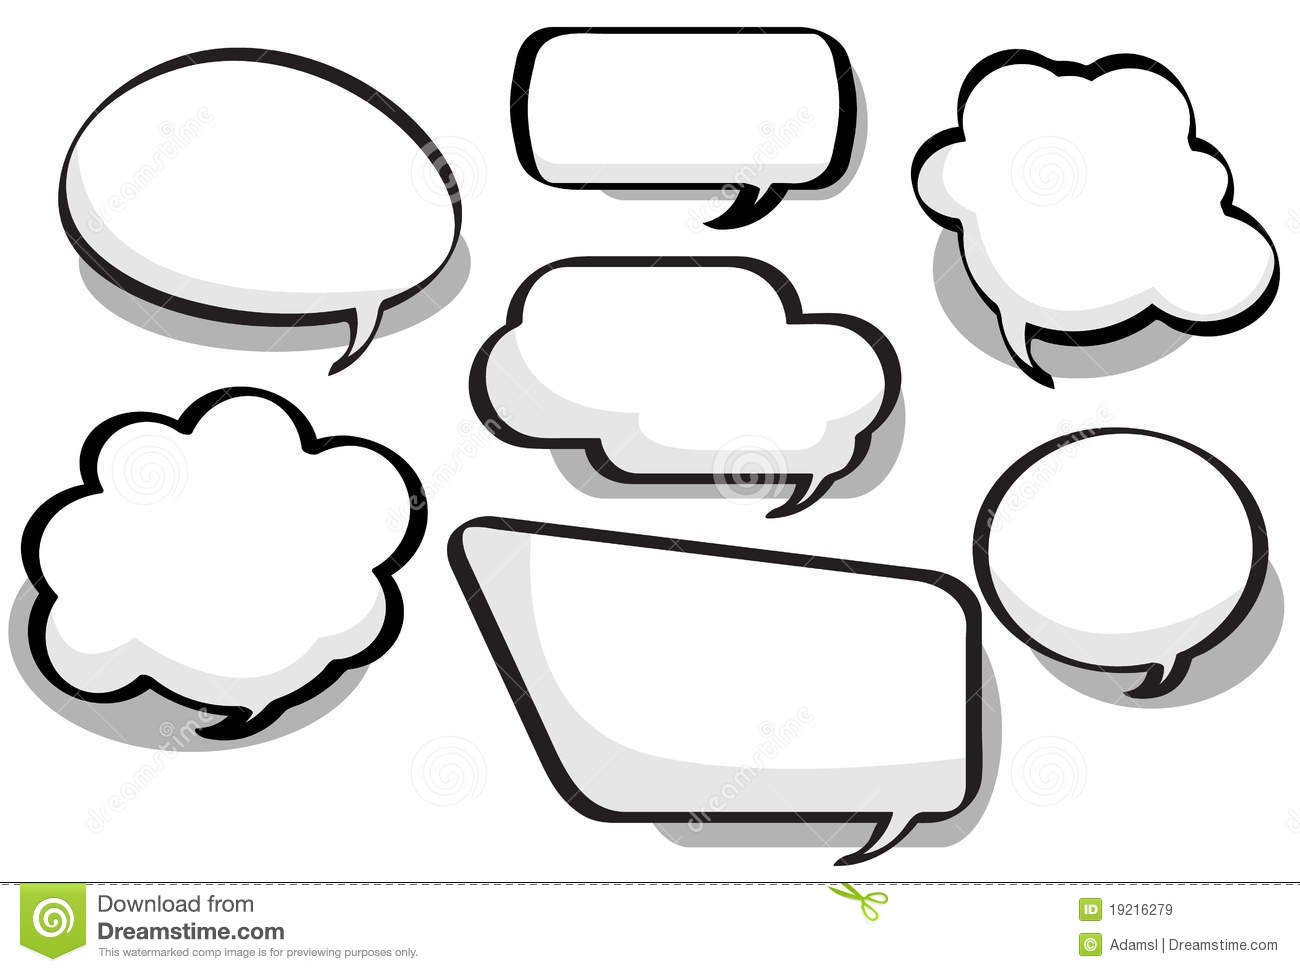 Chat bubbles in a variety of circular, bubble and rectangular styles.